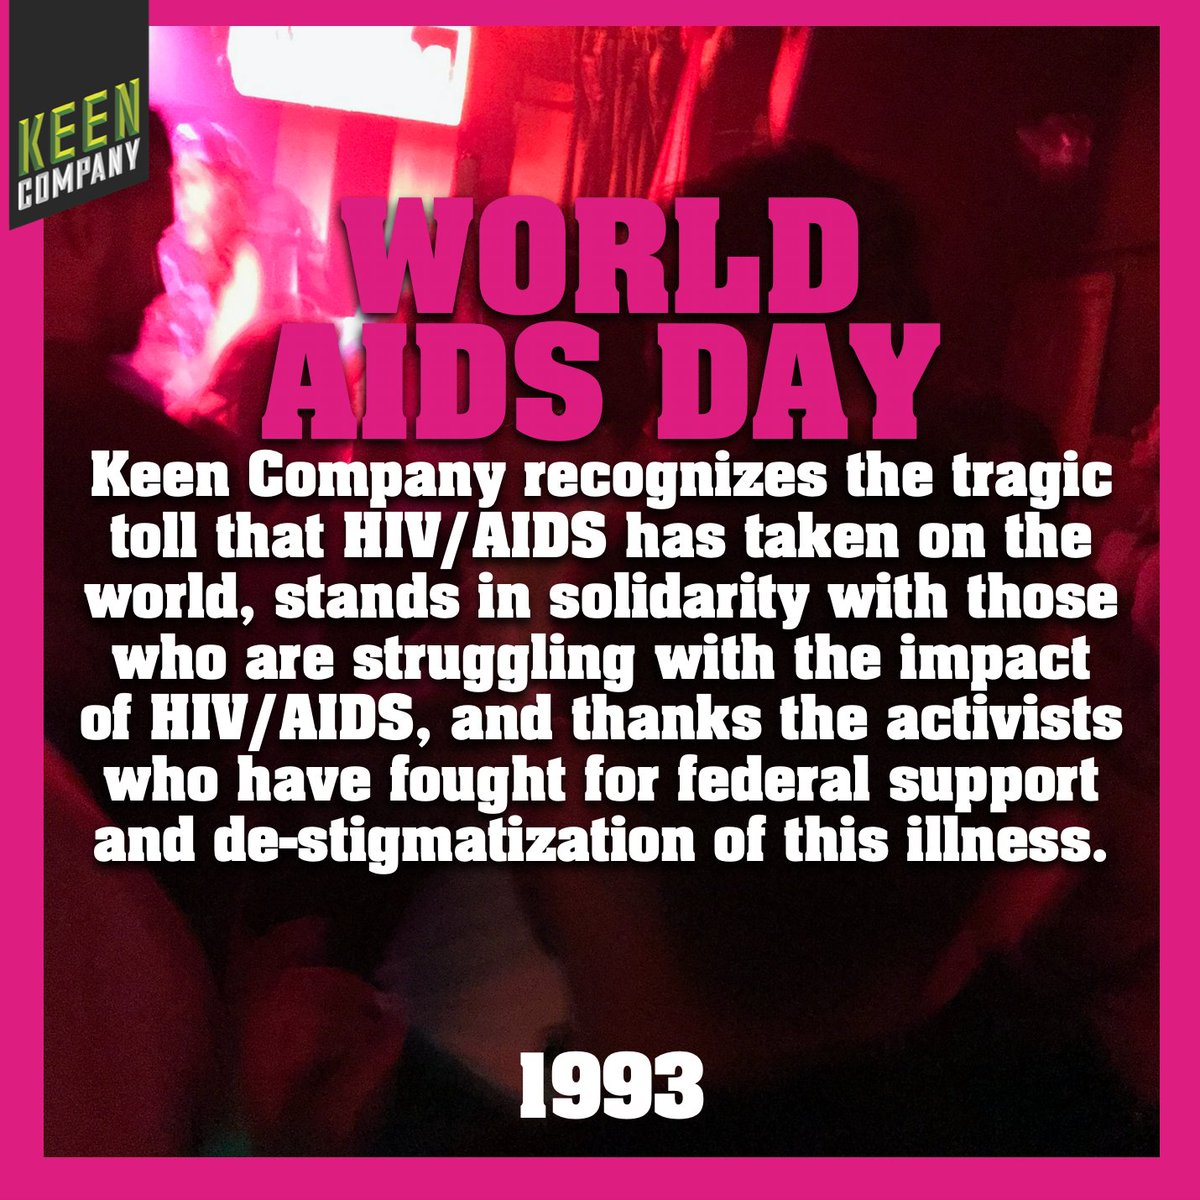 Today, Keen Company solemnly recognizes #WorldAidsDay.